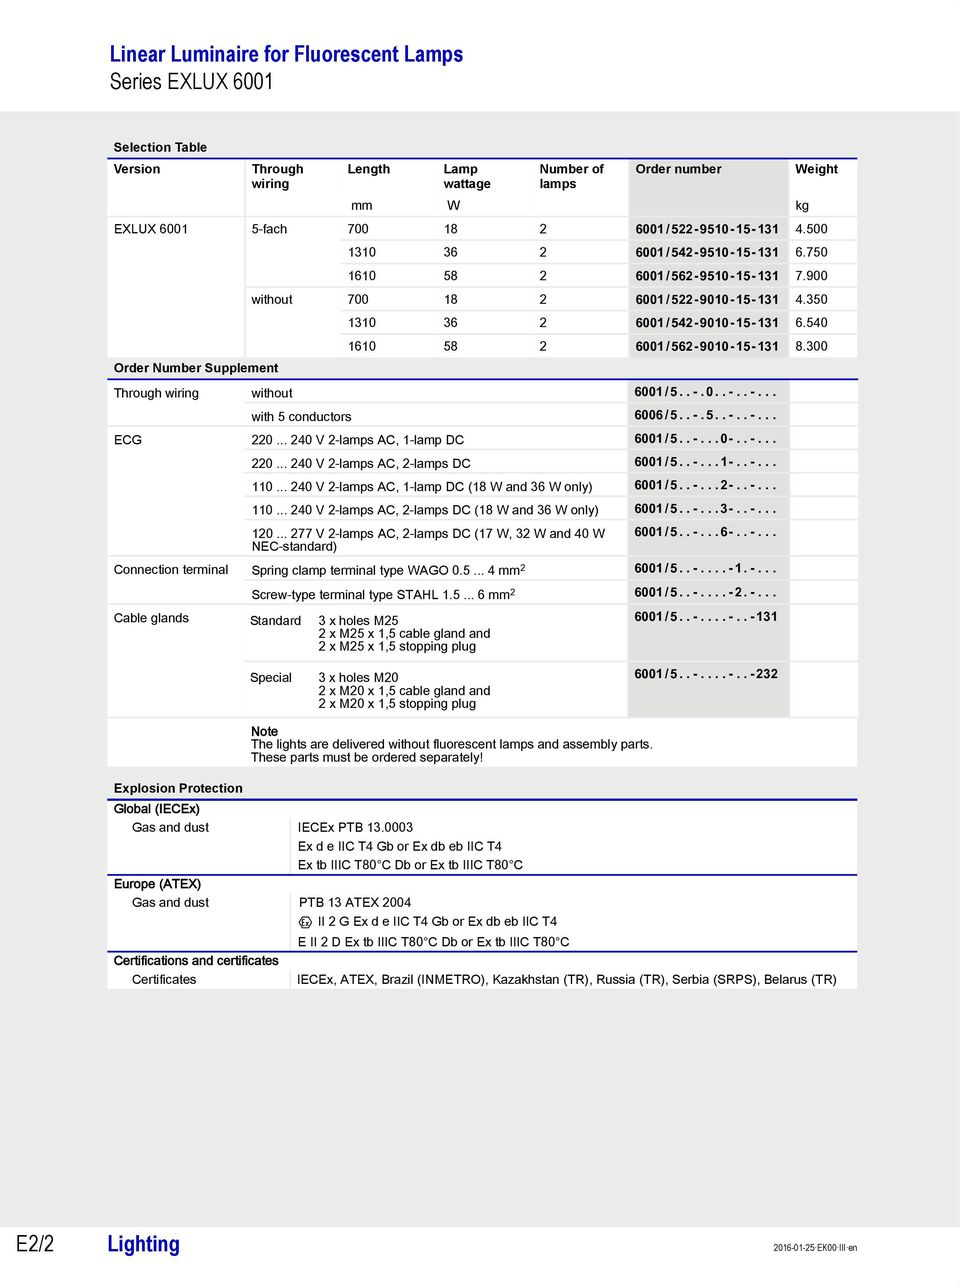 Linear Luminaire For Fluorescent Lamps Series Exlux Pdf Lamp Wiring 540 1610 58 2 6001 562 9010 15 131 8300 Through